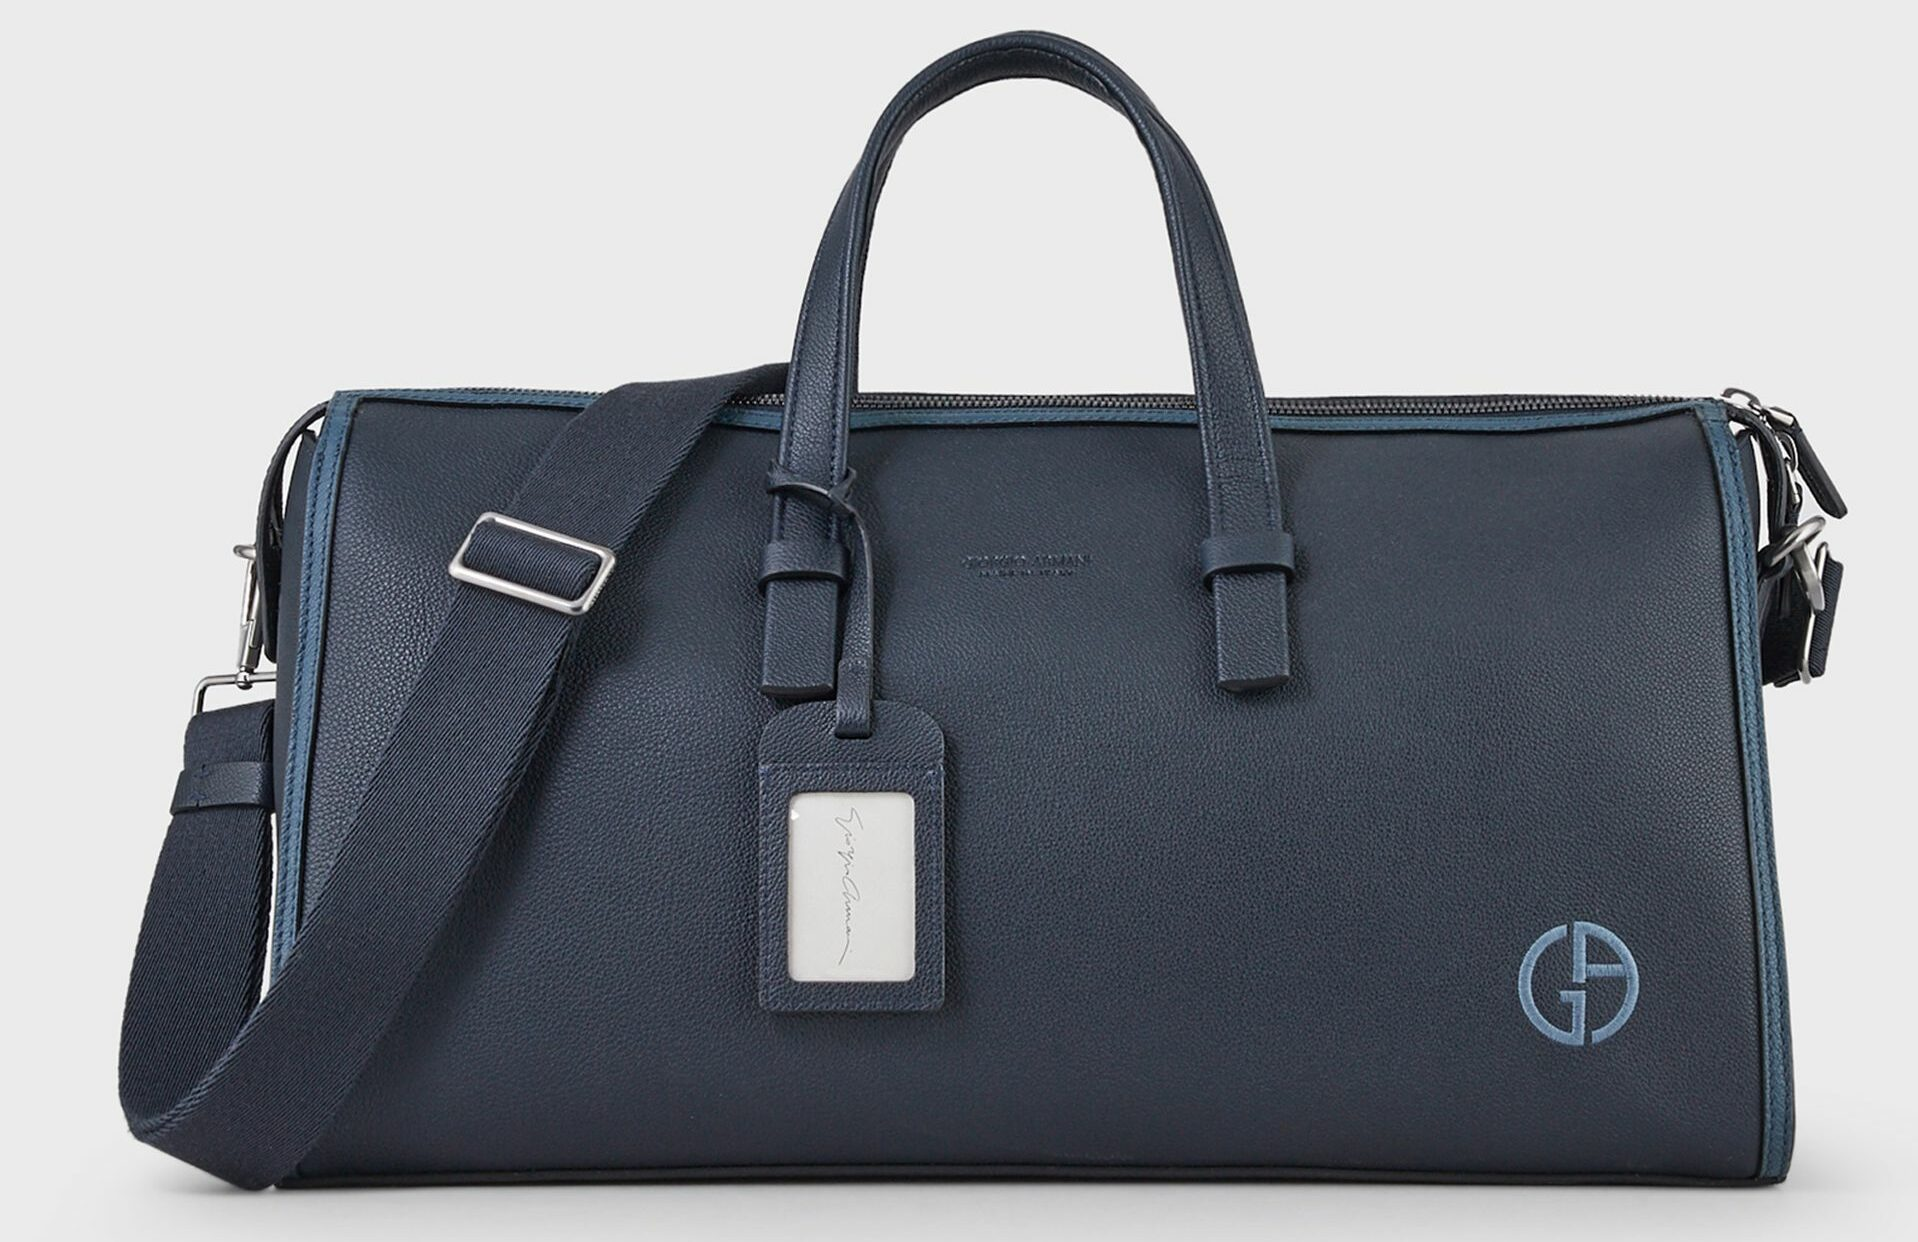 Armani Grainy leather holdall with name tag